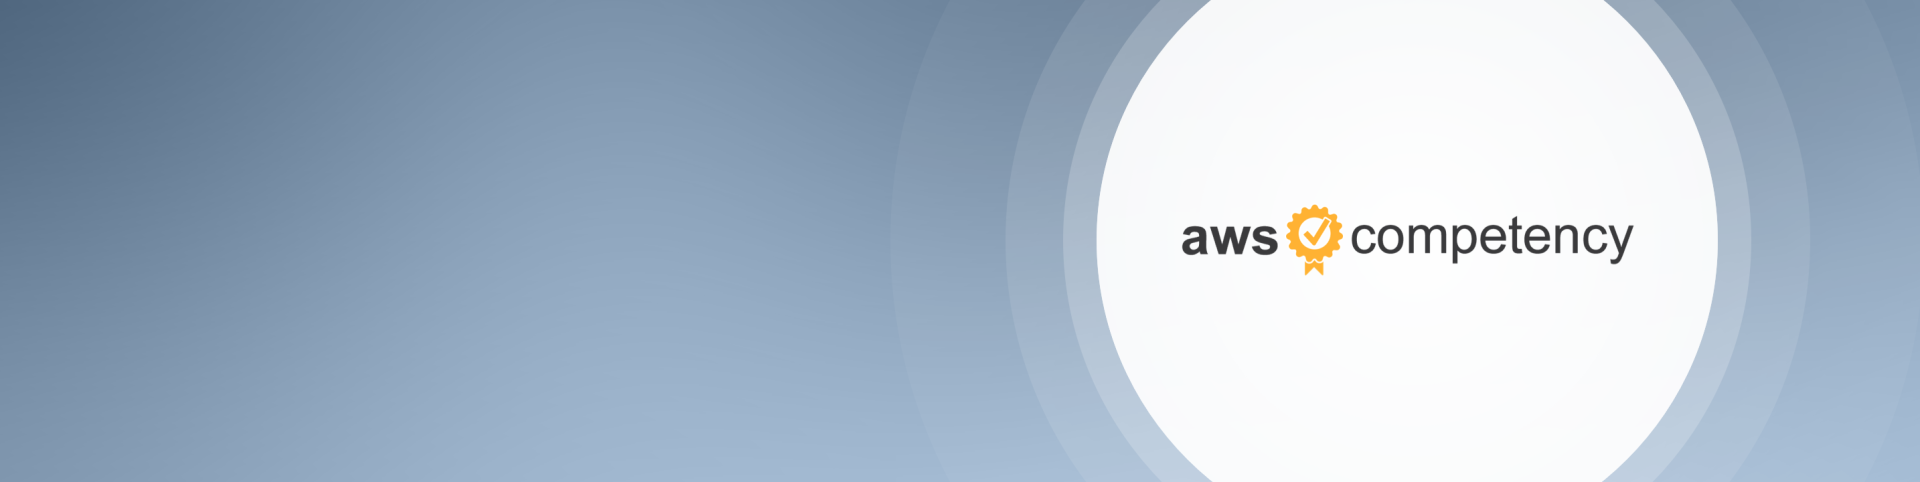 aws-full-width-promo-bkgd.png